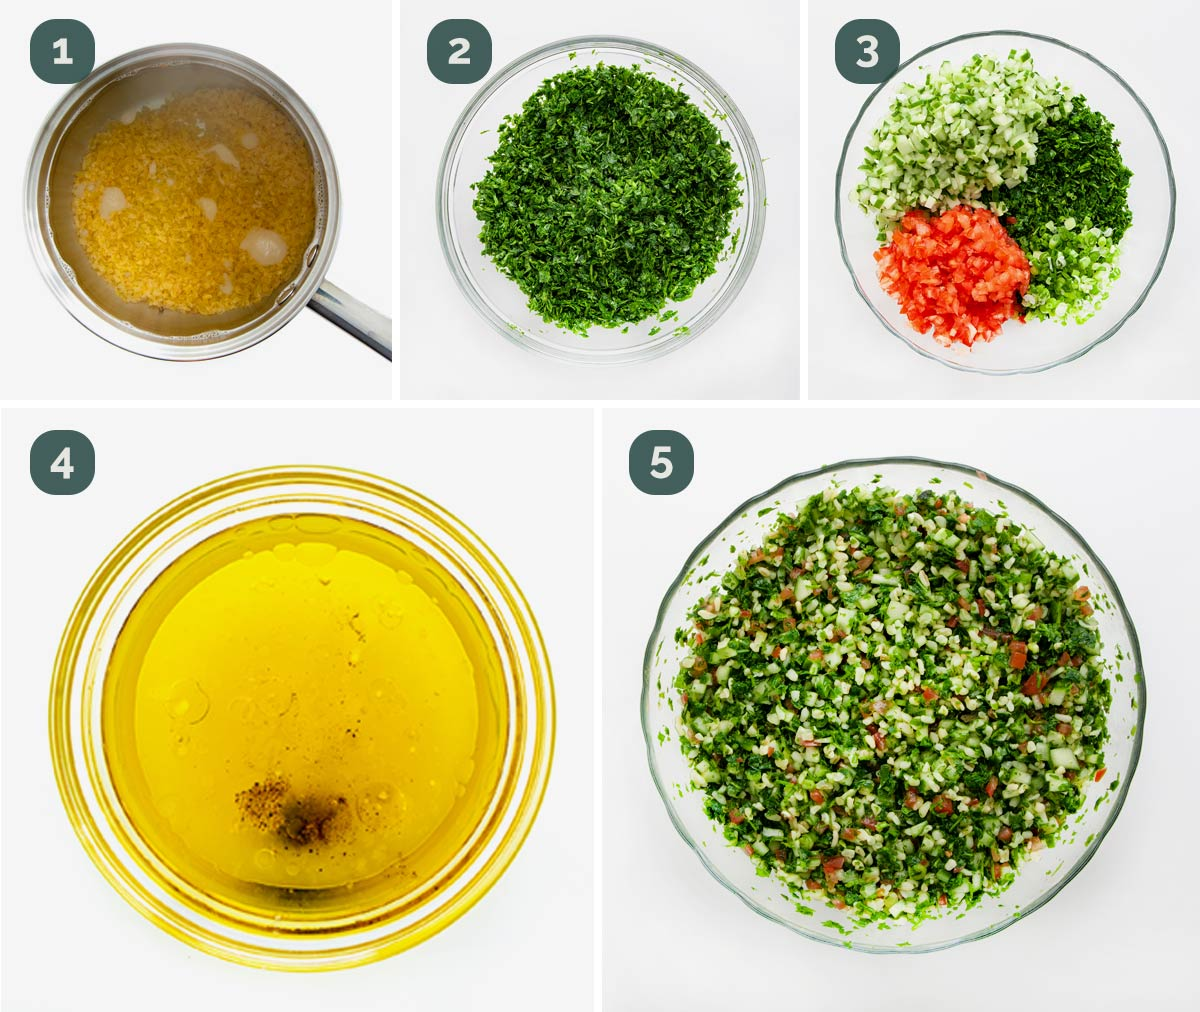 process shots showing how to make tabbouleh salad.